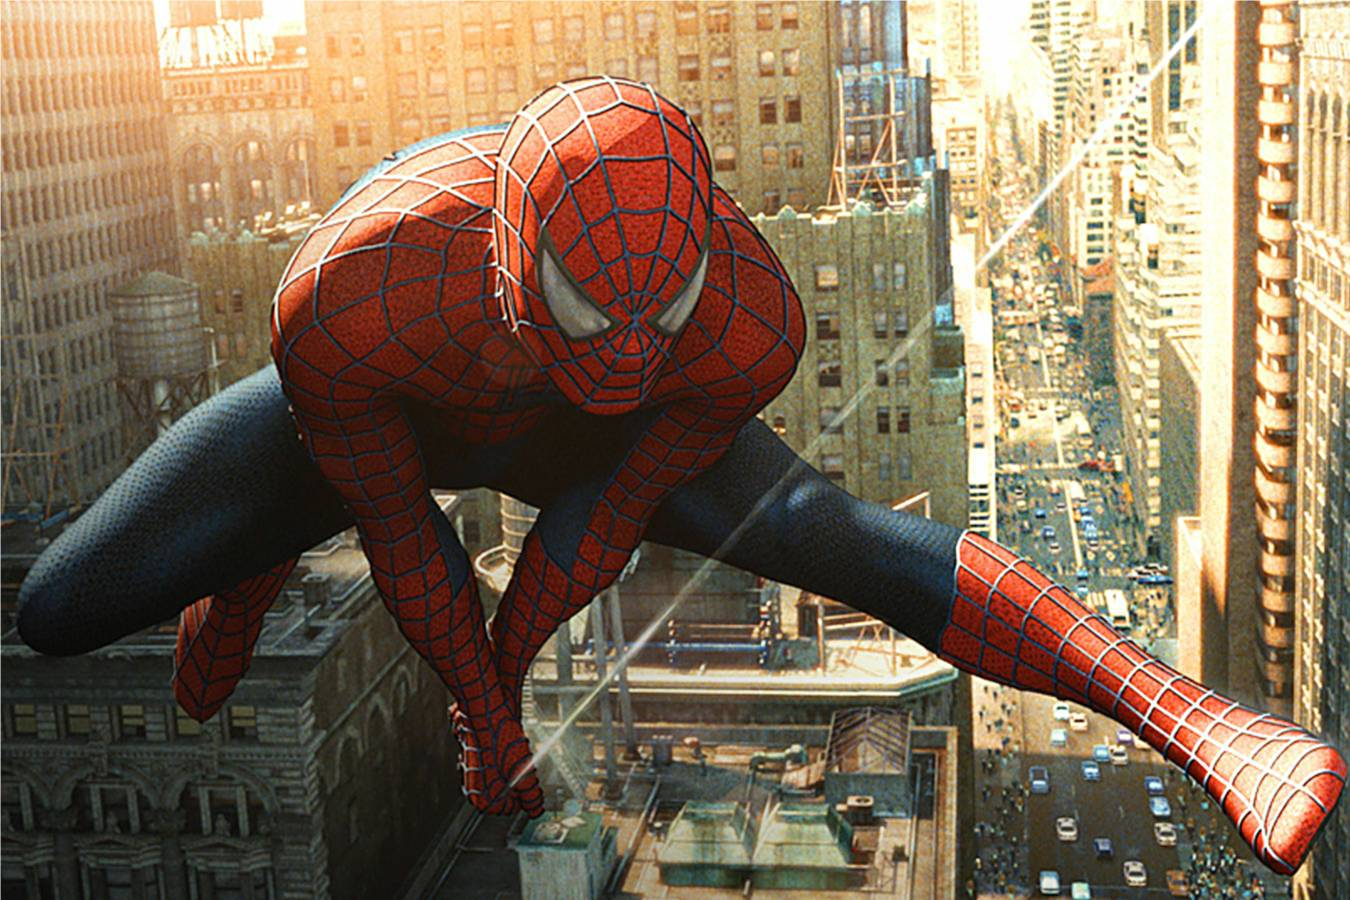 Spiderman Hd Wallpapers Download 1350x900